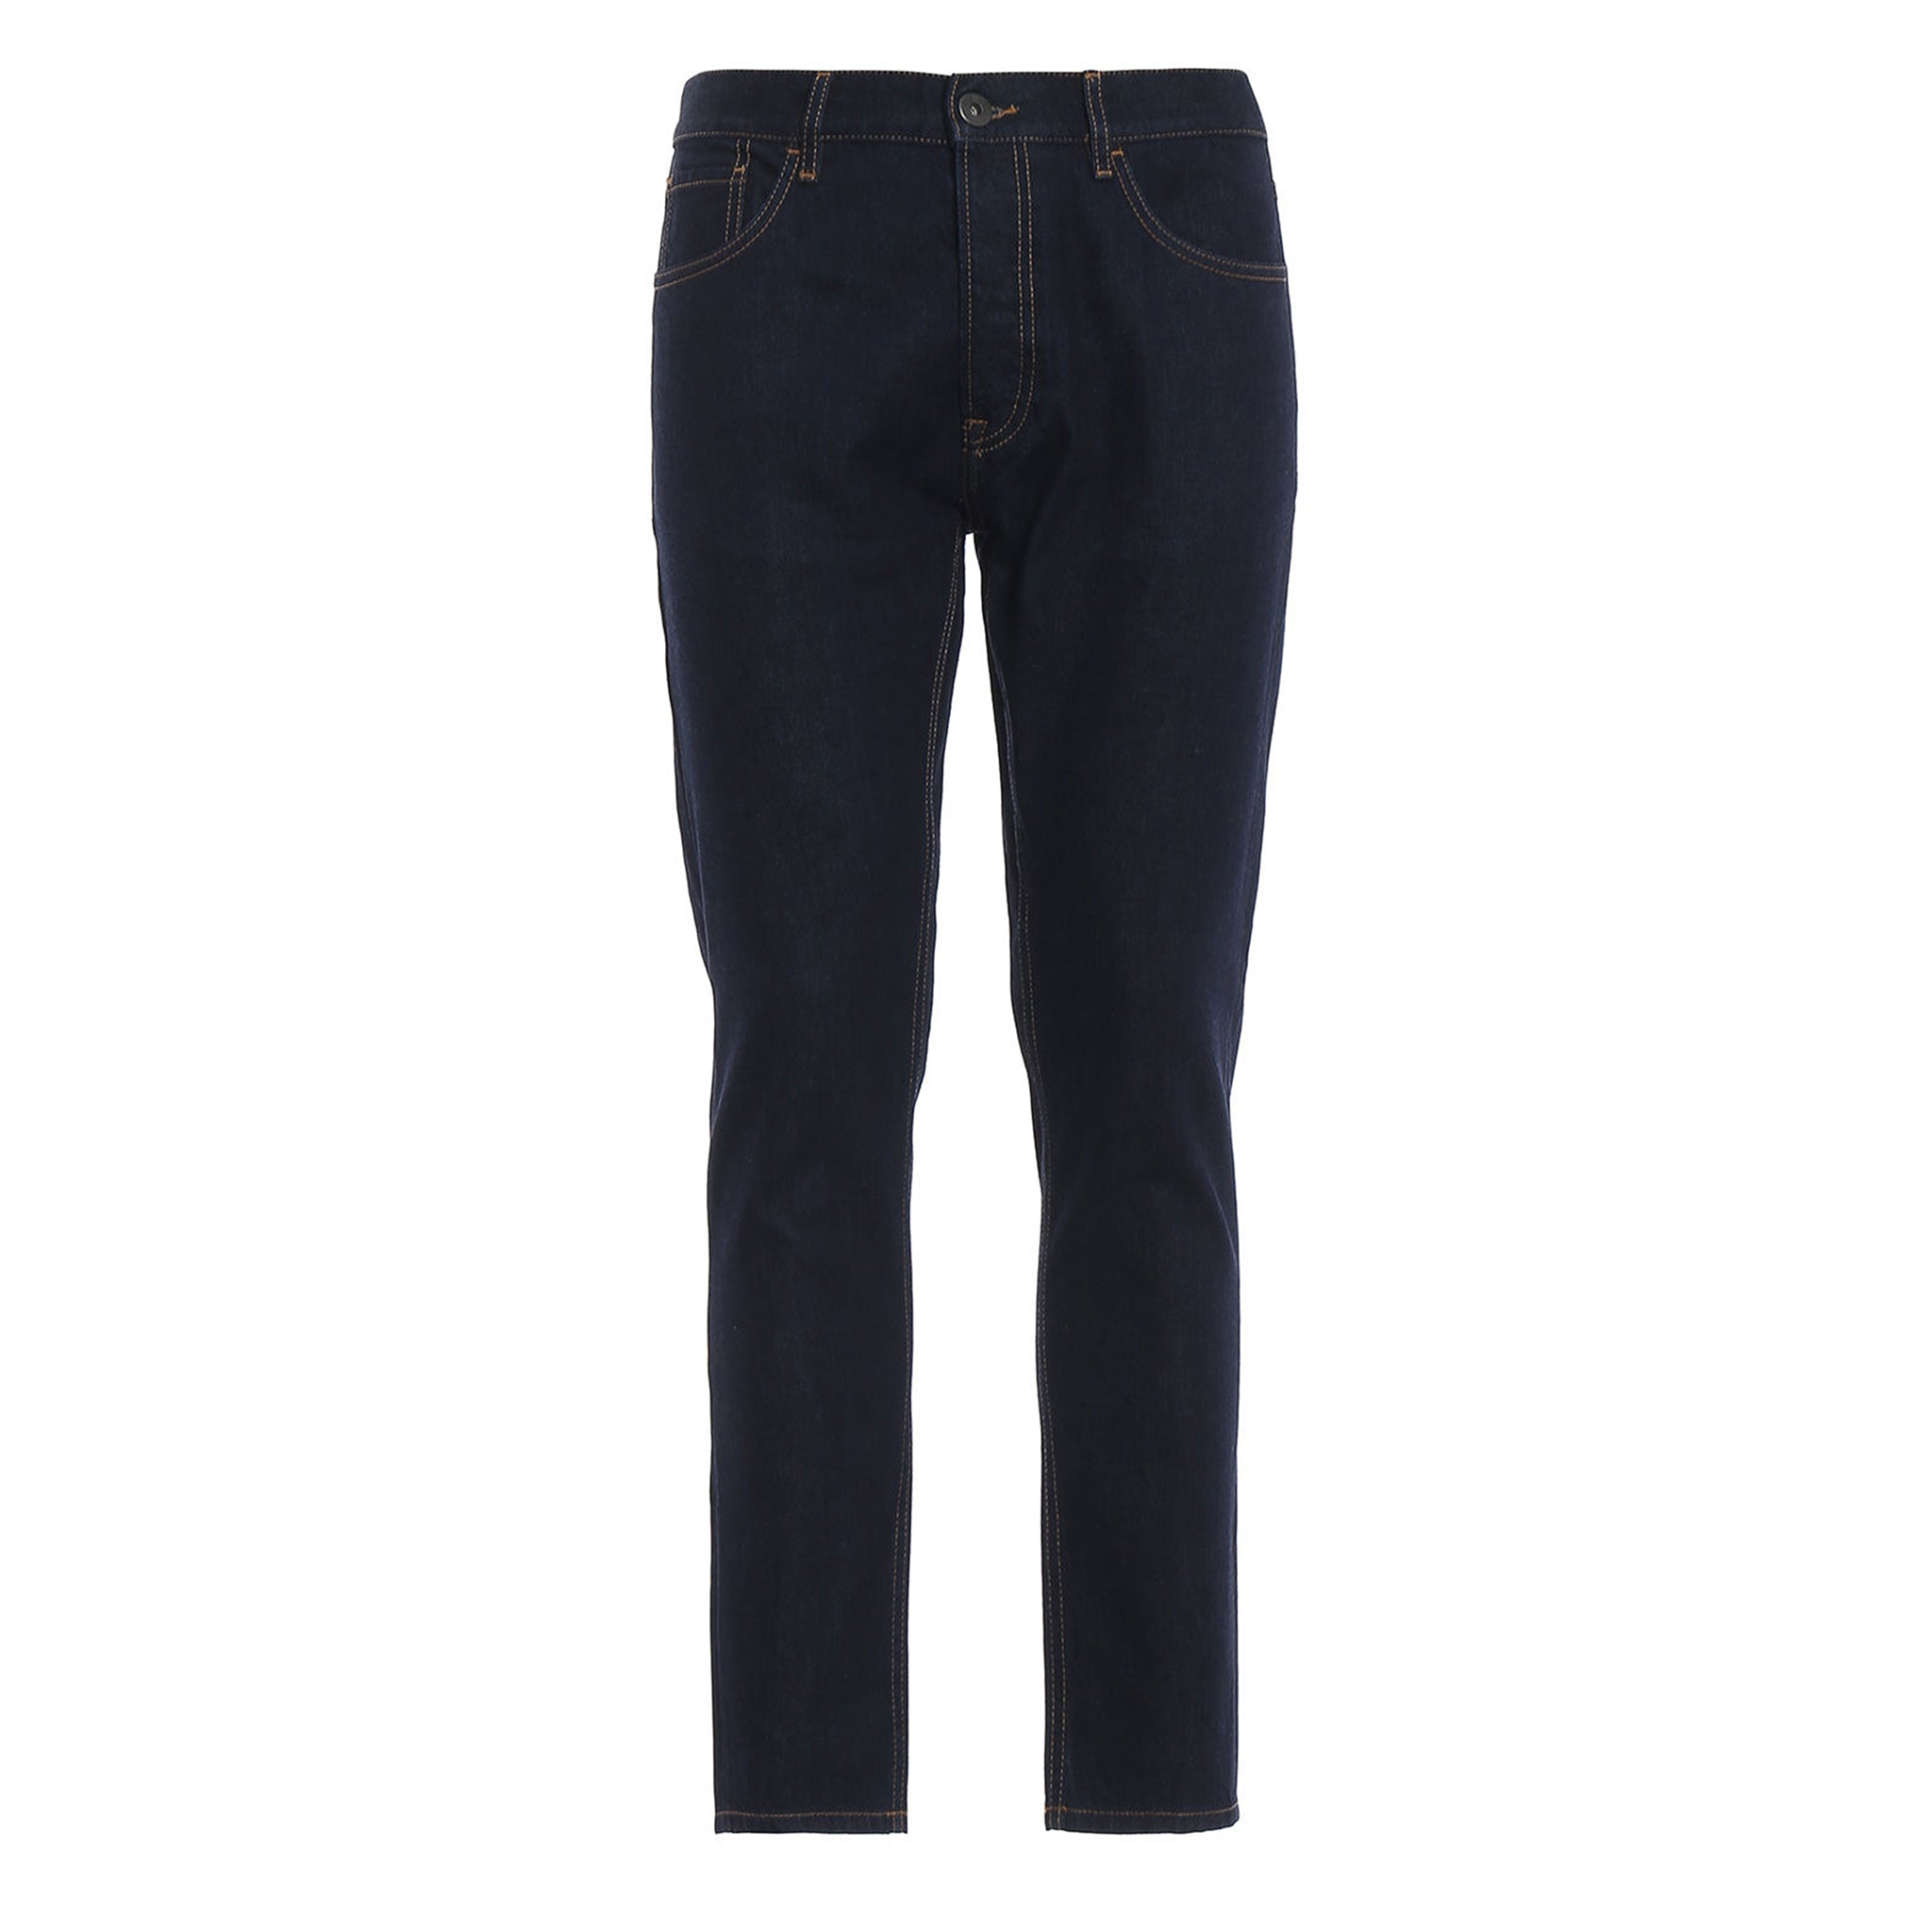 Prada Selvage Denim Dip & Dry